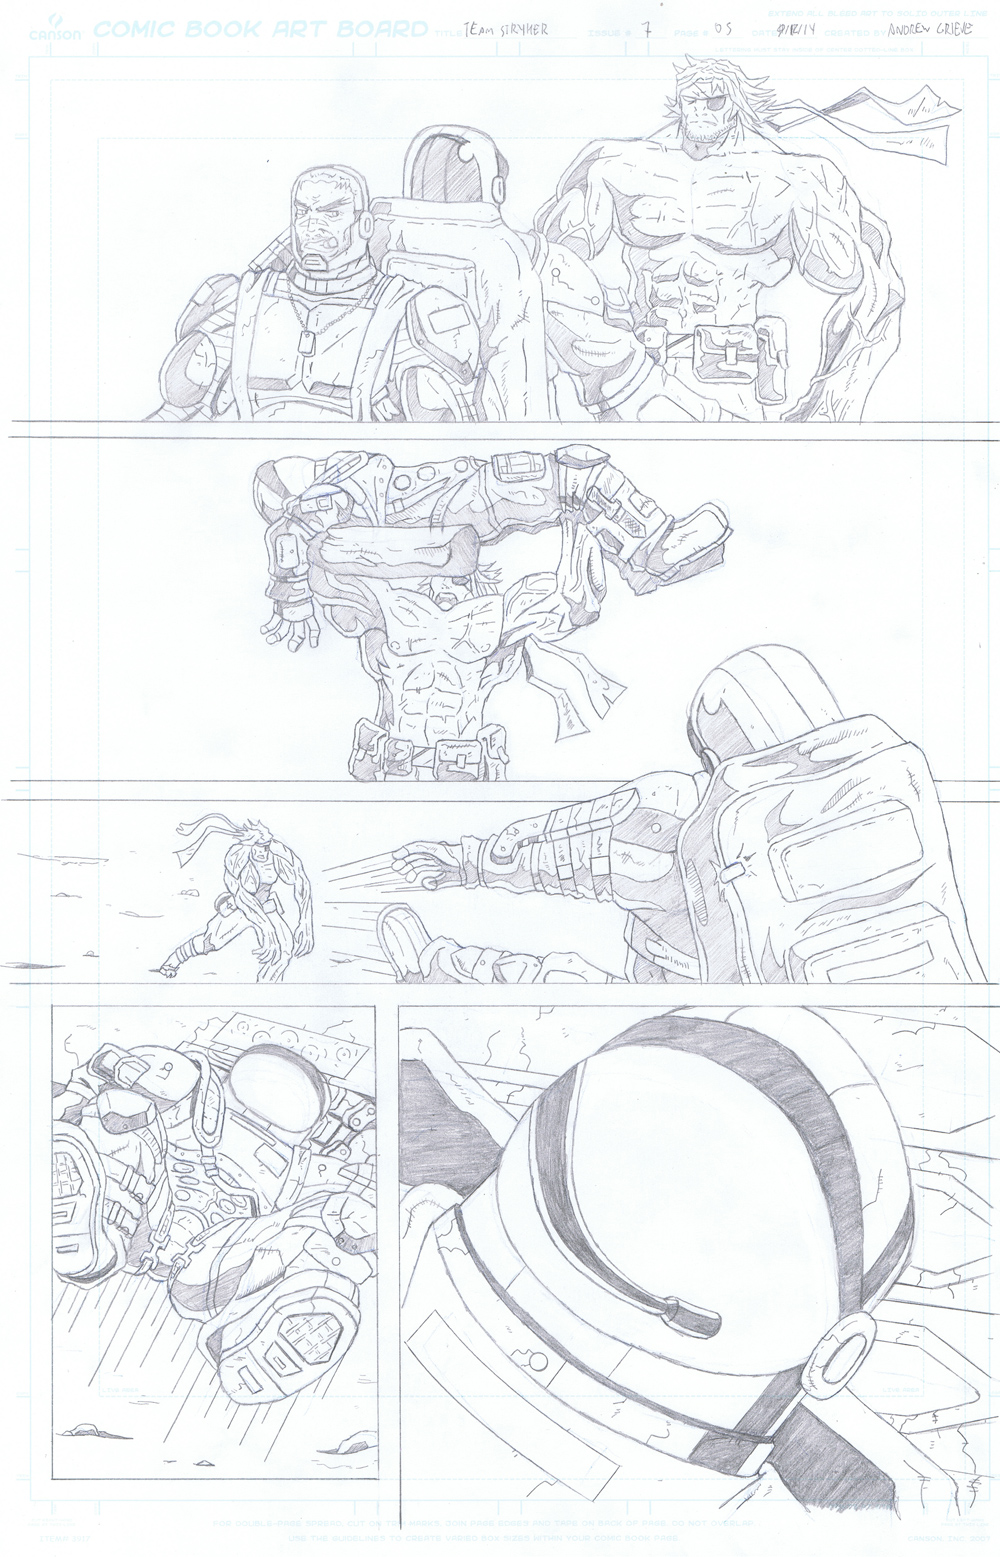 MISSION 007: PAGE 05 PENCIL